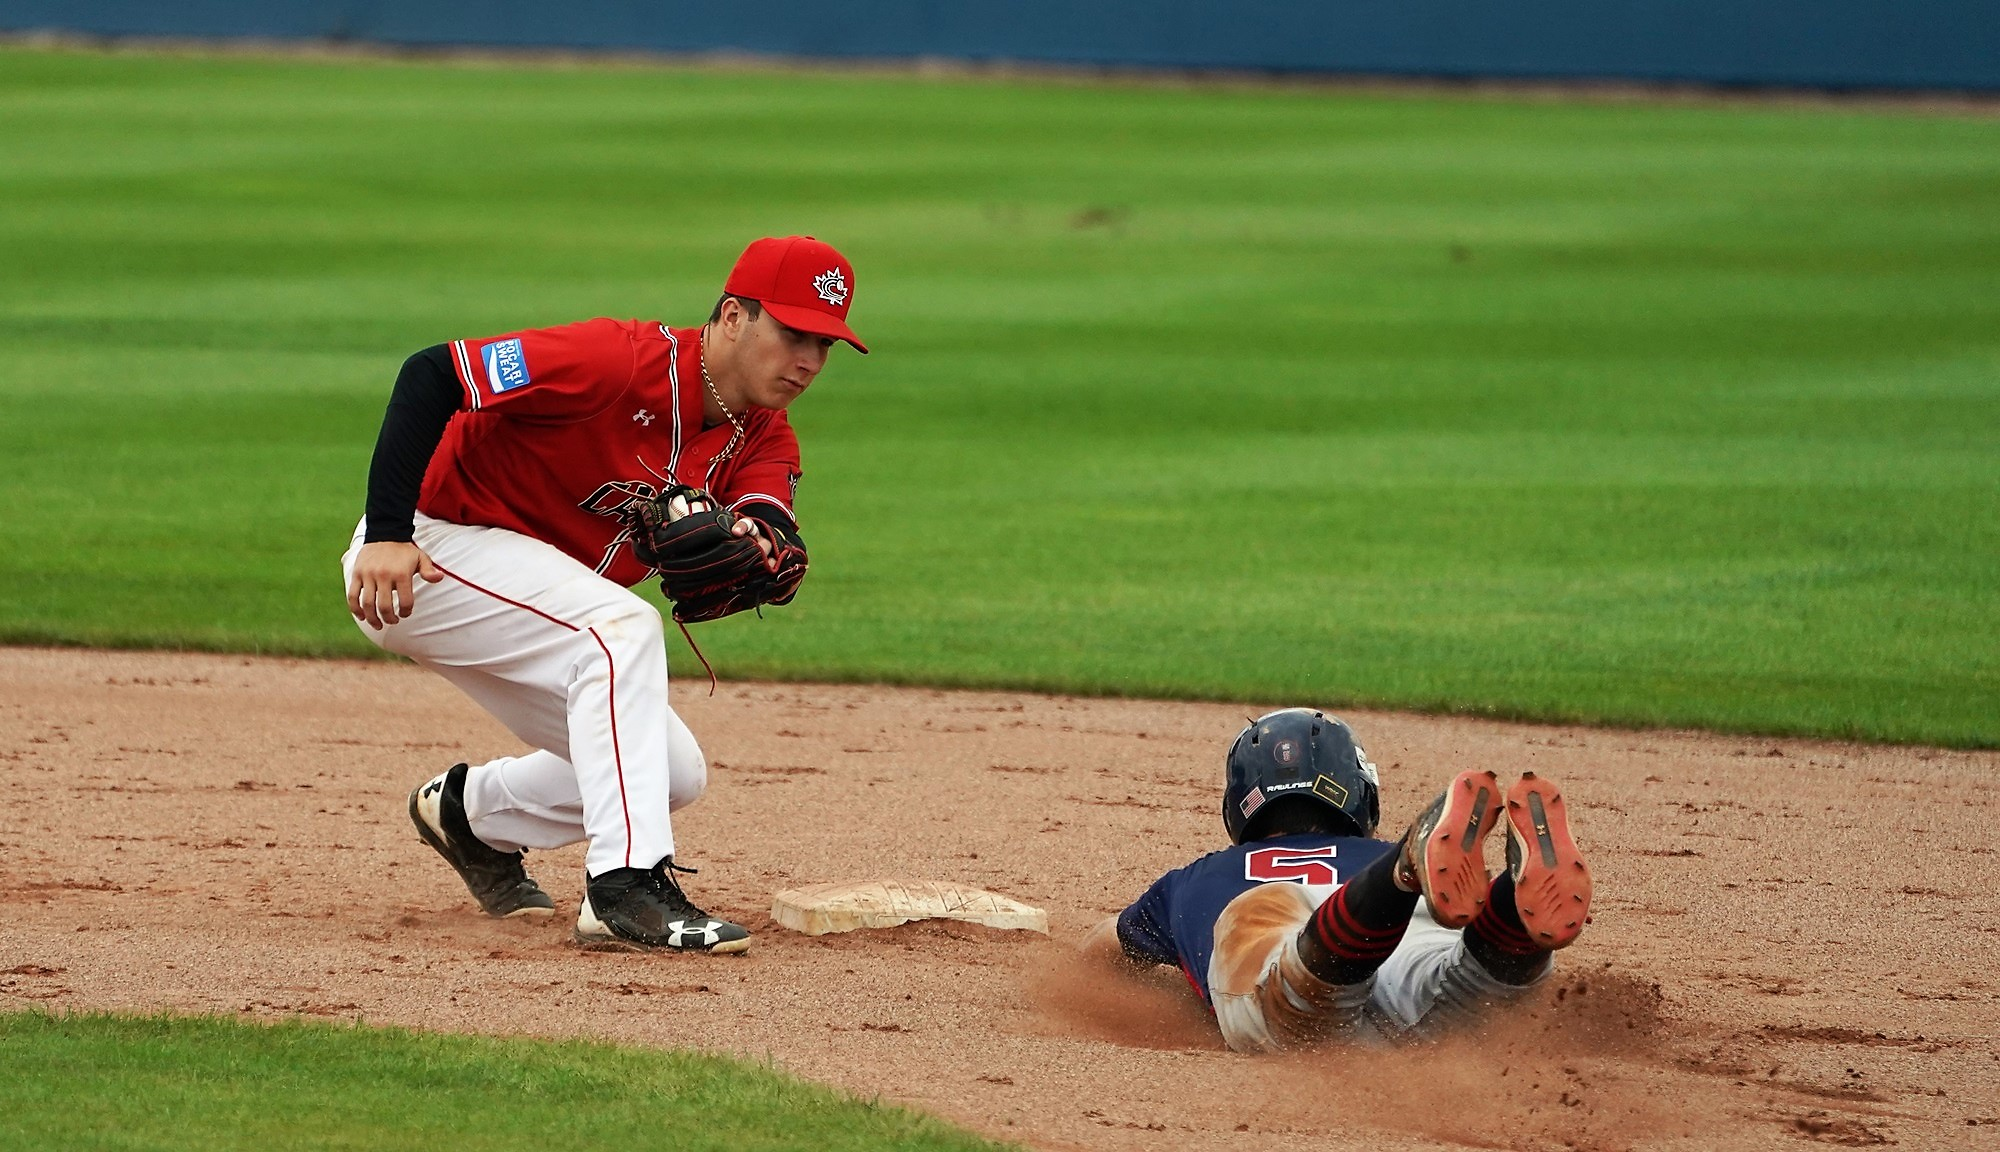 U-18 Baseball World Cup:  Canada eliminated from medal contention